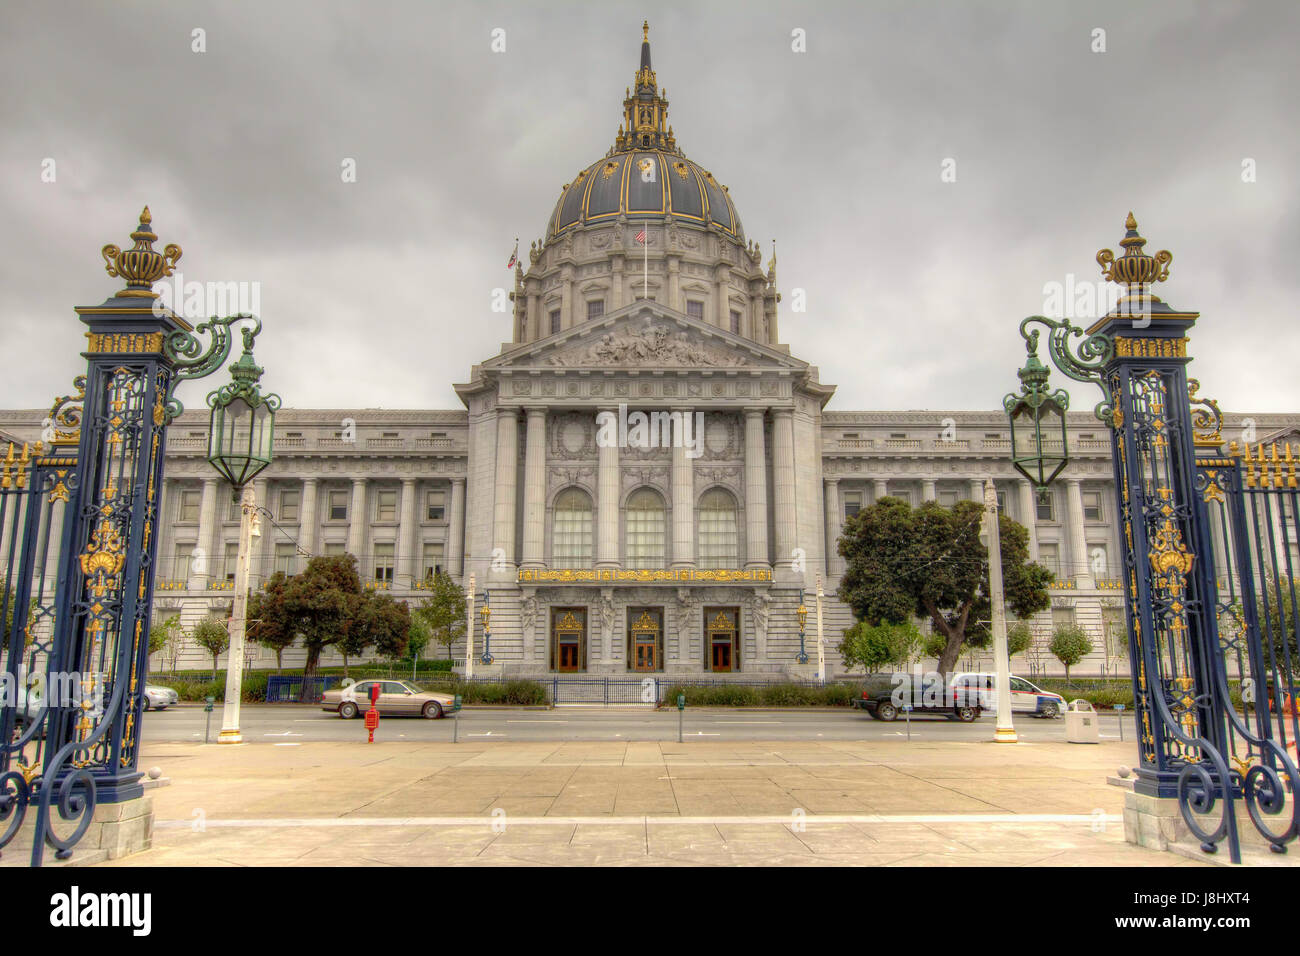 hall, city, town, california, government, hall, city, town, monument, dome, - Stock Image